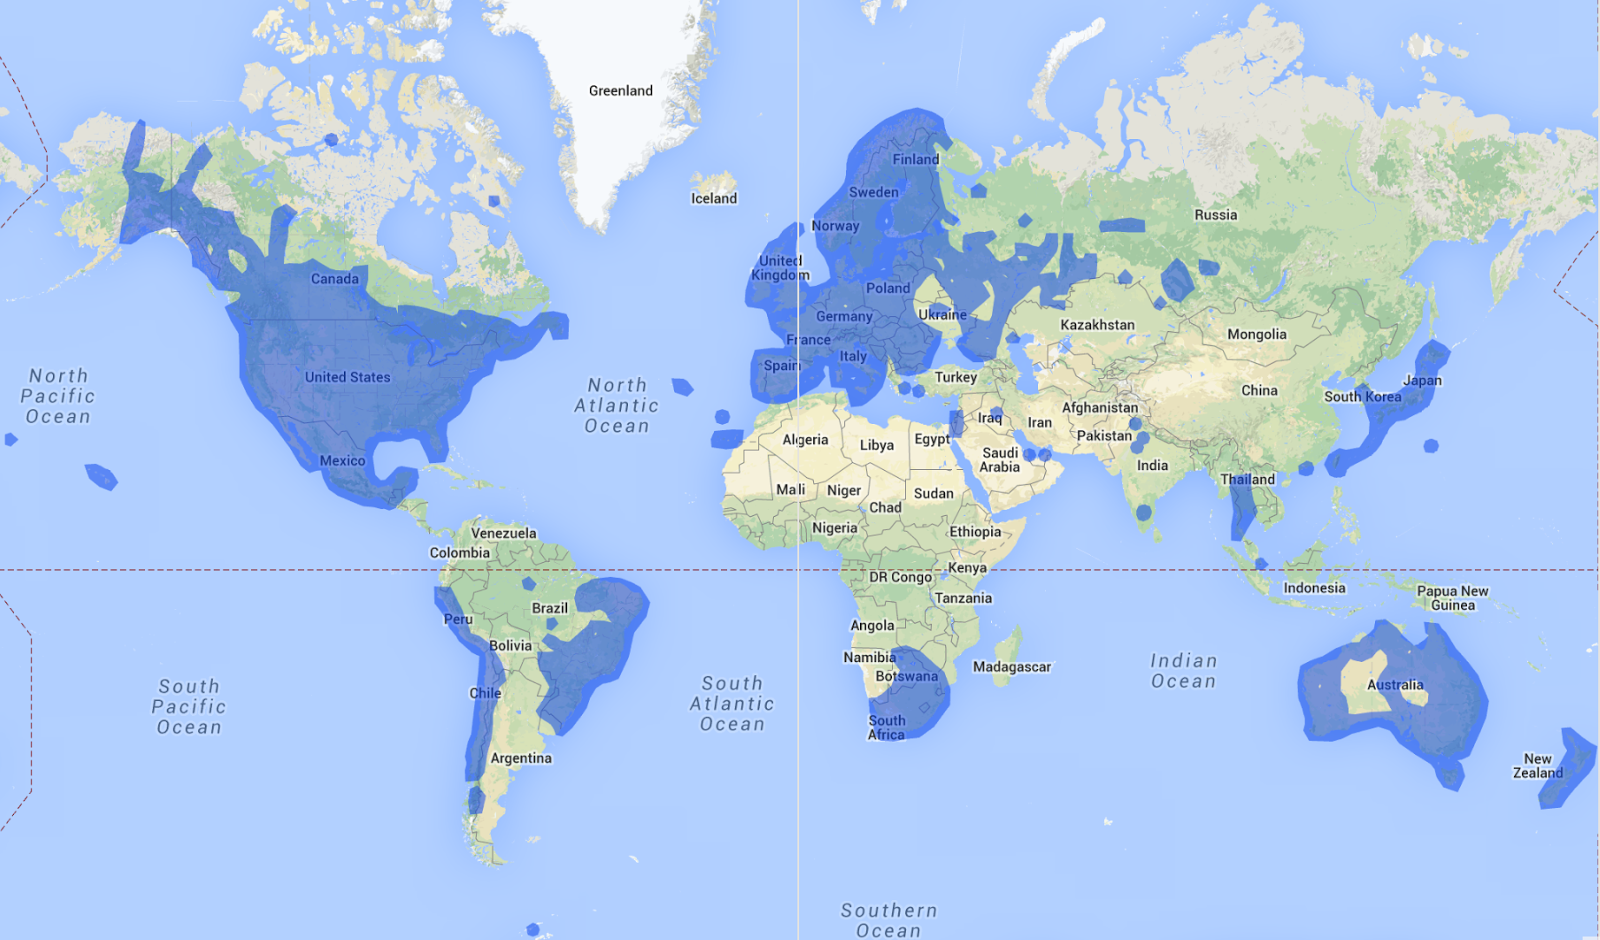 How To Create A My Map In Google Maps InformationKnowledge - Plot my walk google maps